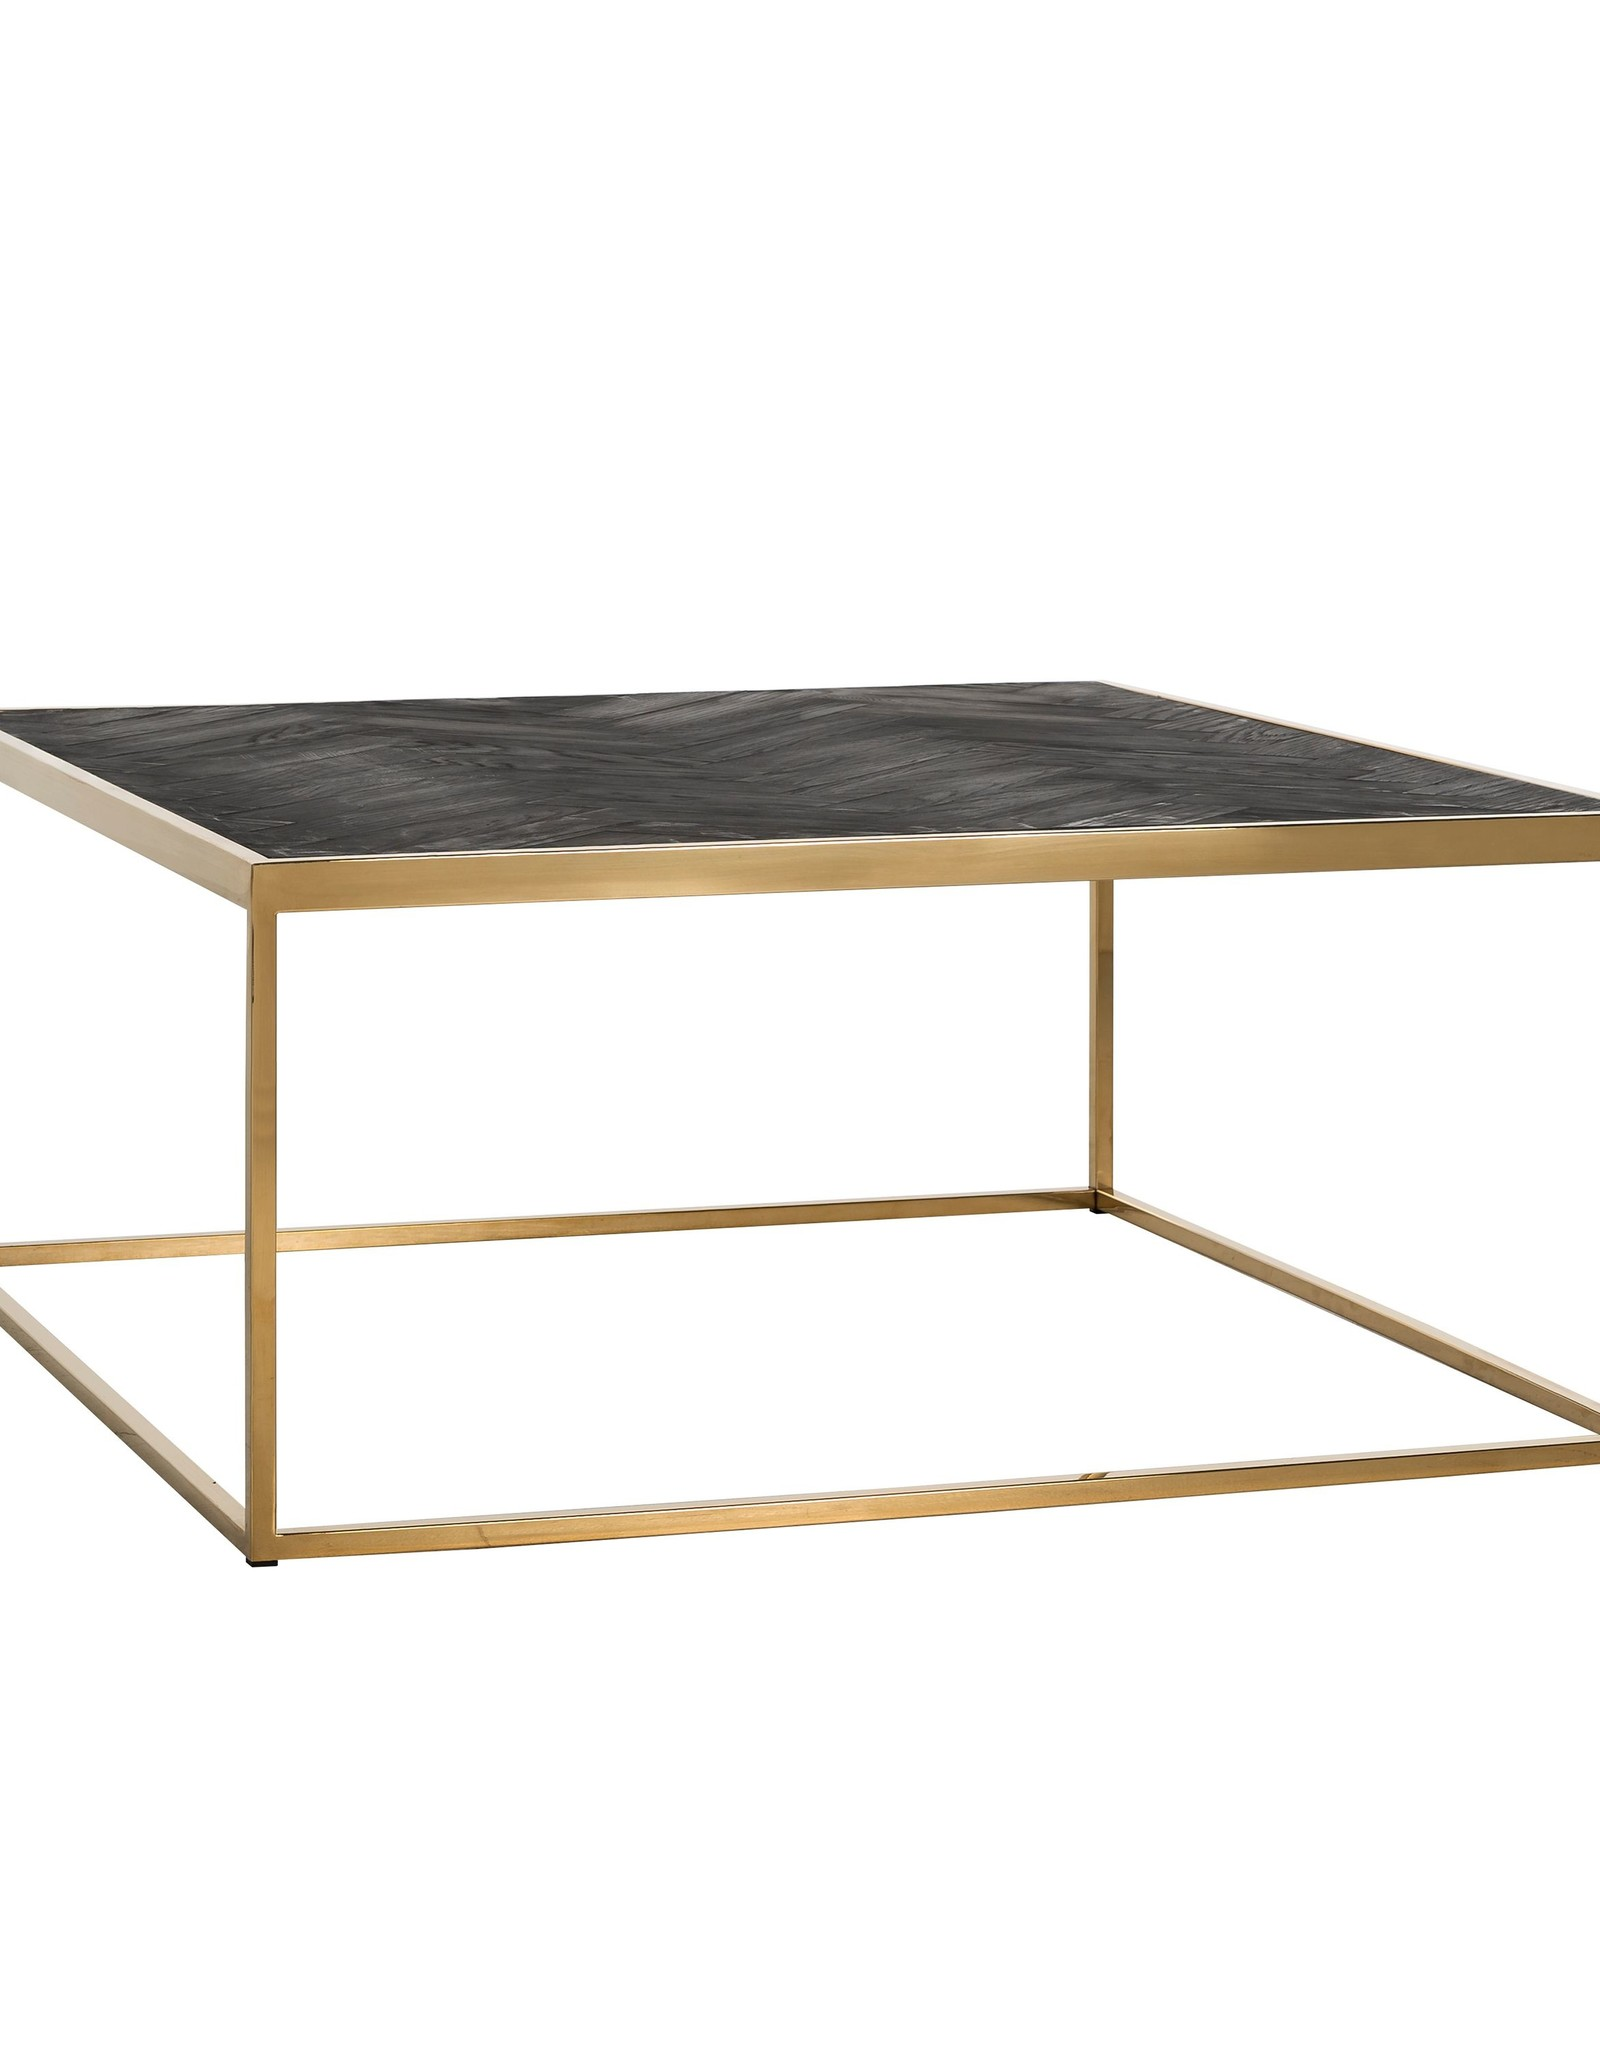 Richmond Interiors Salontafel Blackbone gold 90x90